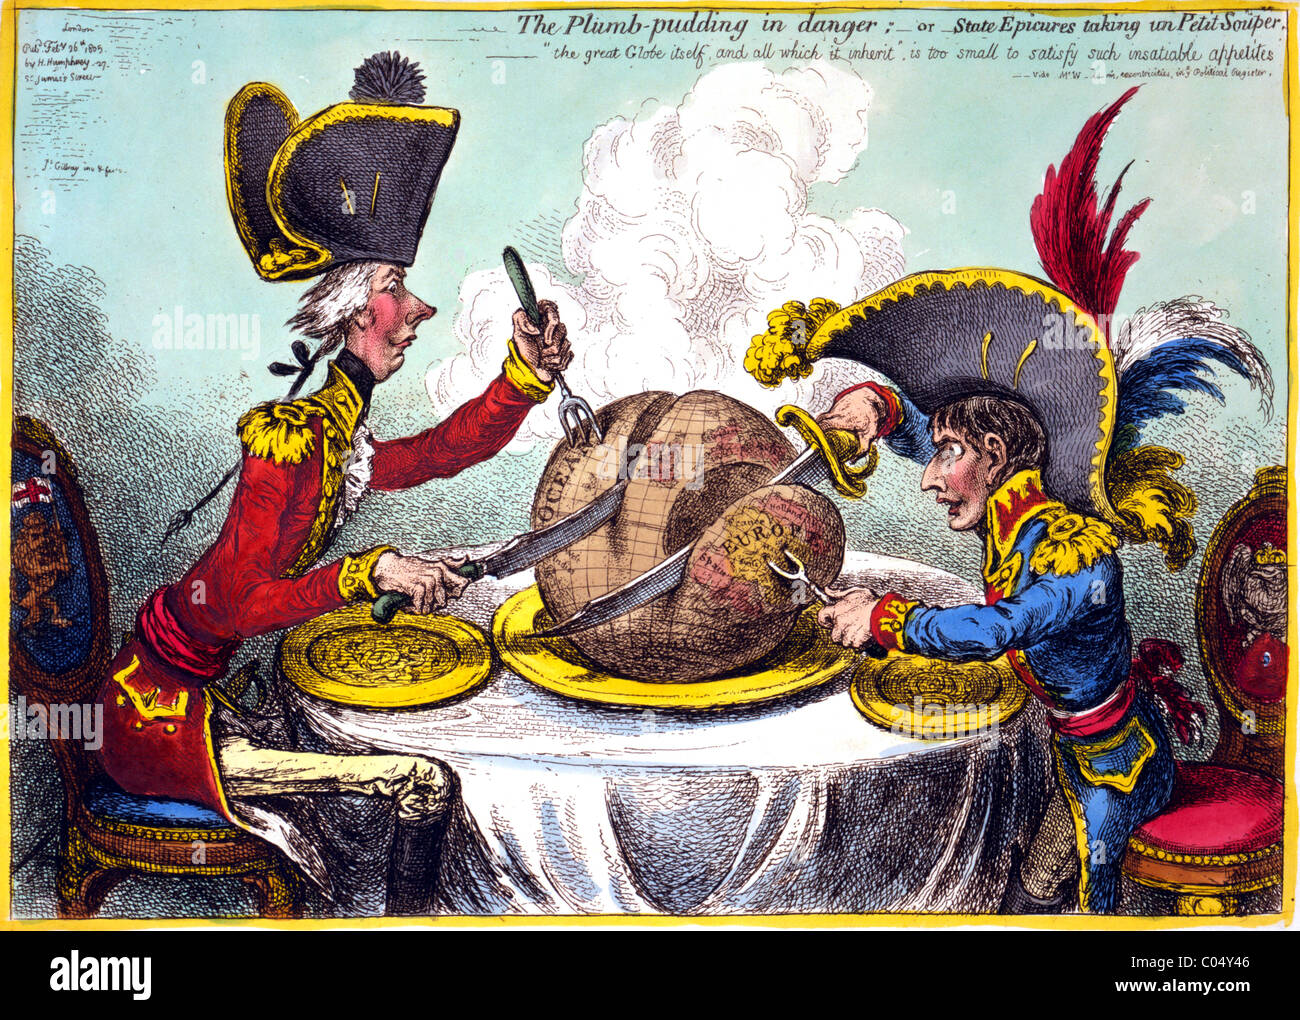 William Pitt and Napoleon depicted in a satirical cartoon. - Stock Image